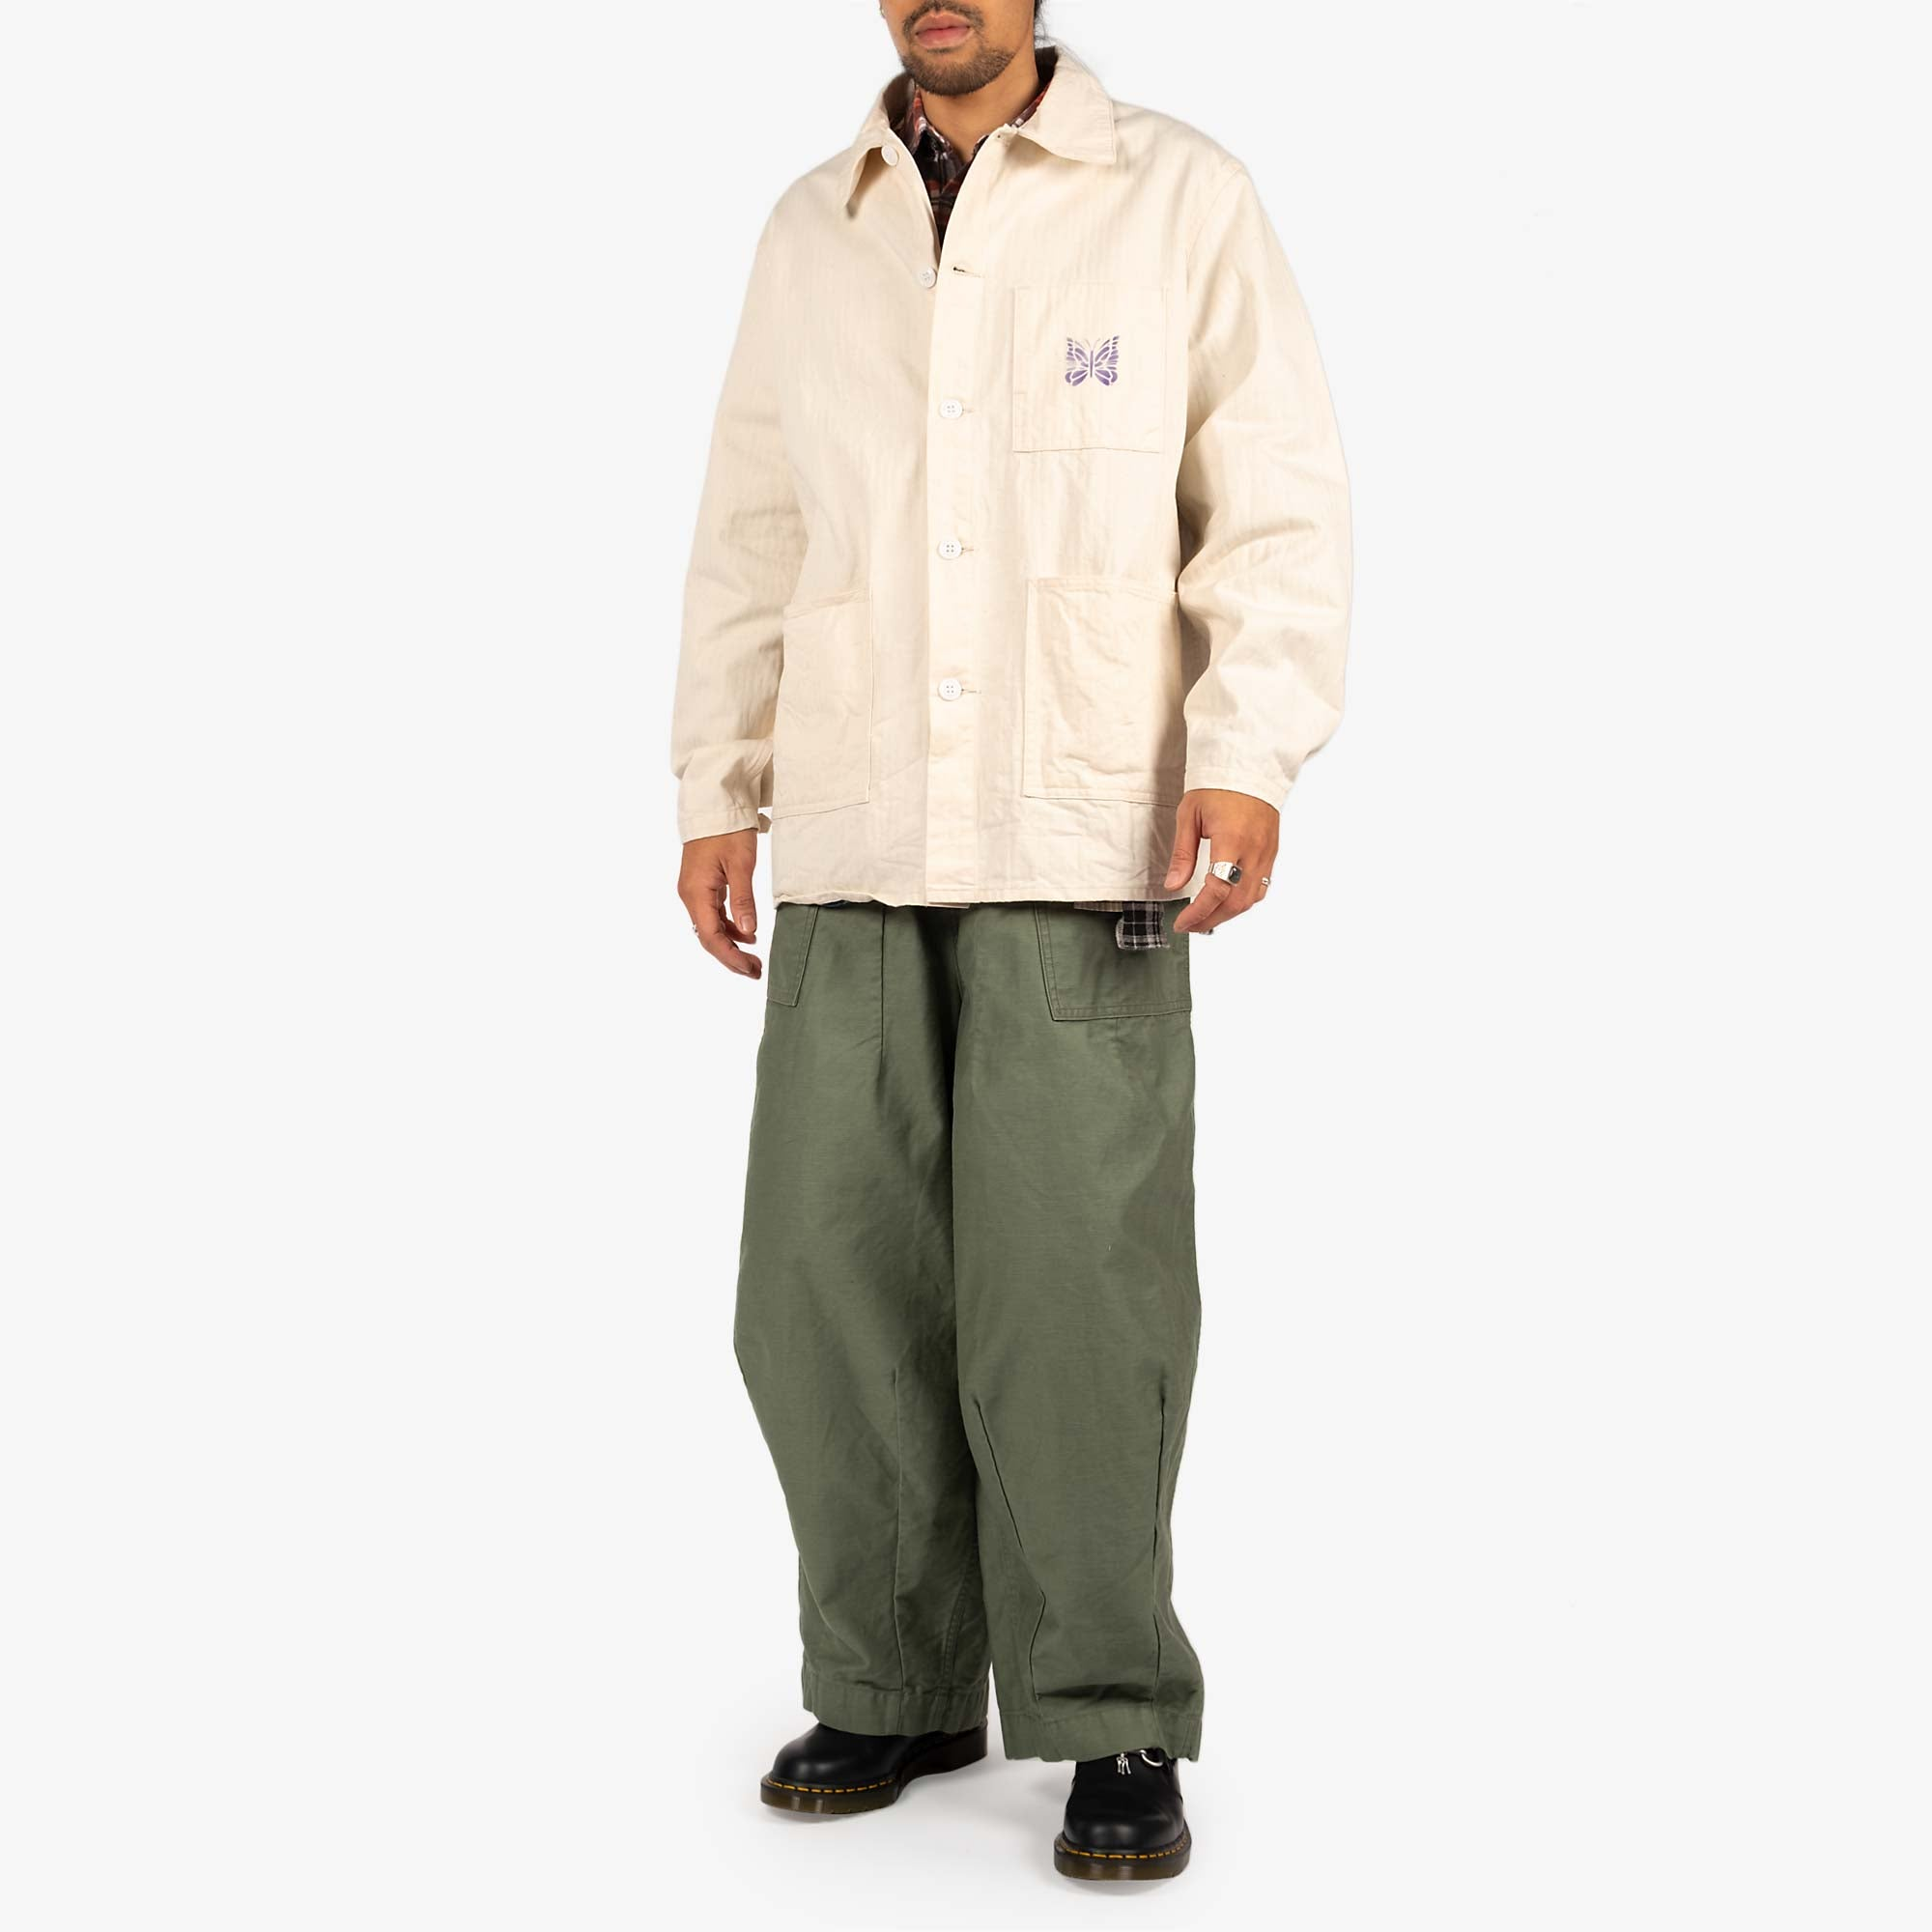 Needles Men's D.N. Coverall Jacket - Off White 5